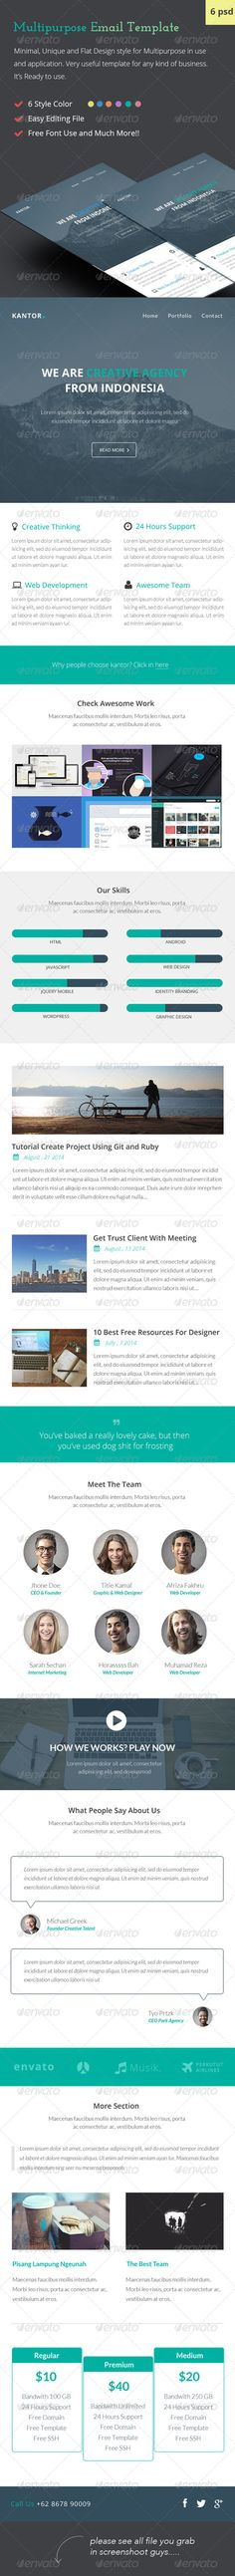 Free Email Newsletter Templates PSD Free email newsletter - free email newsletter templates word